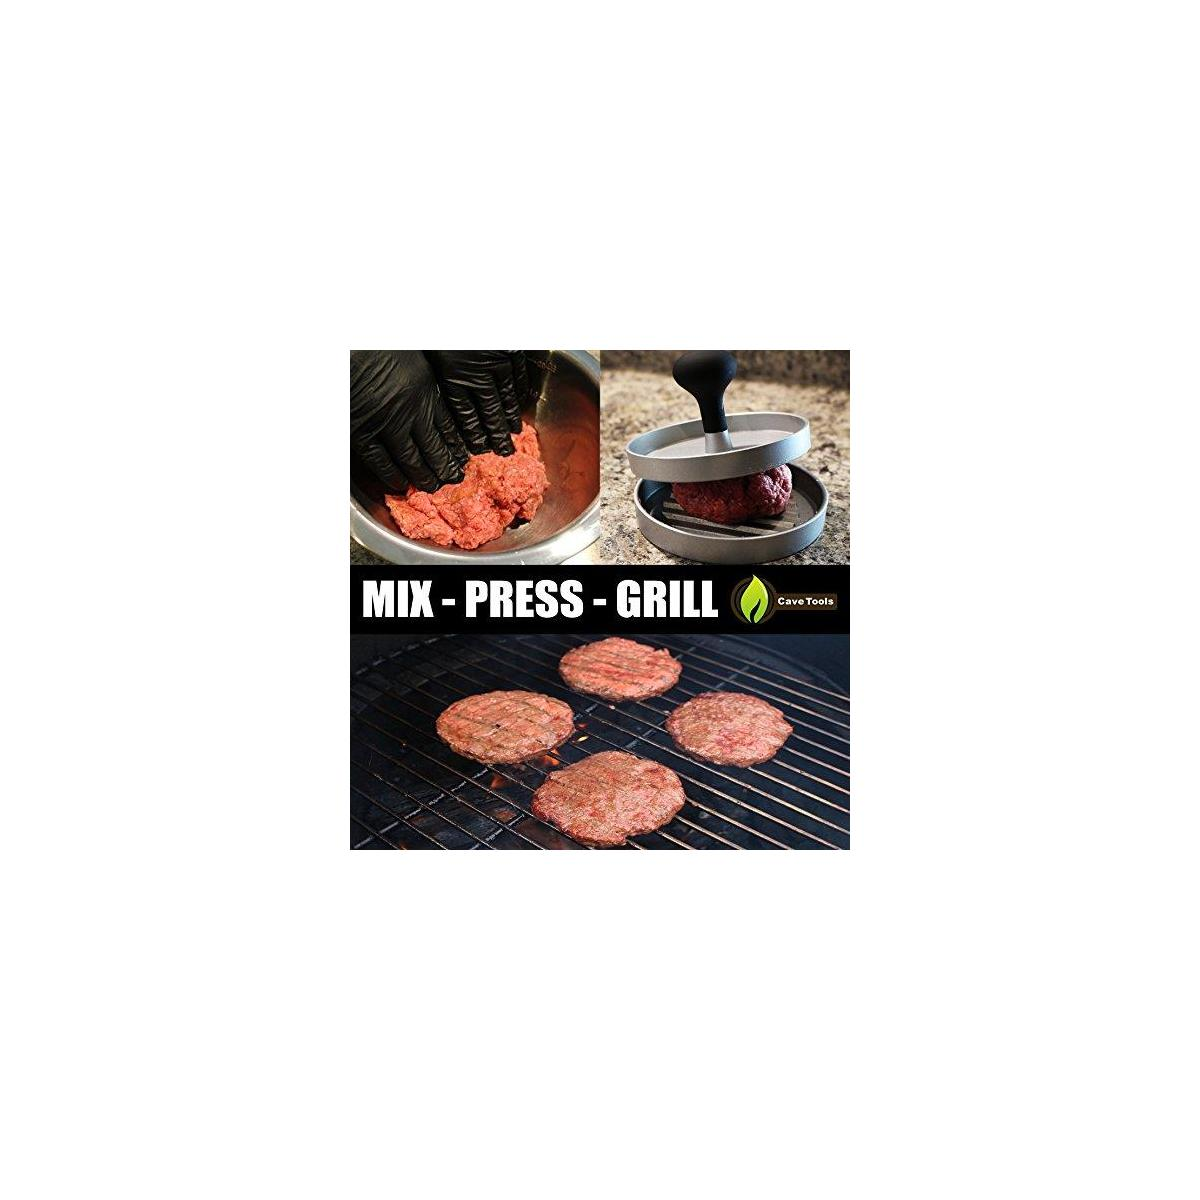 Burger Press + Jalapeno Grill Rack & Pepper Corer Tool - Large 24 Capacity Roaster - Holder Also for Cooking Chili or Chicken Legs & Wings Roasting on BBQ Smoker or Oven - Stainless Steel Accessories